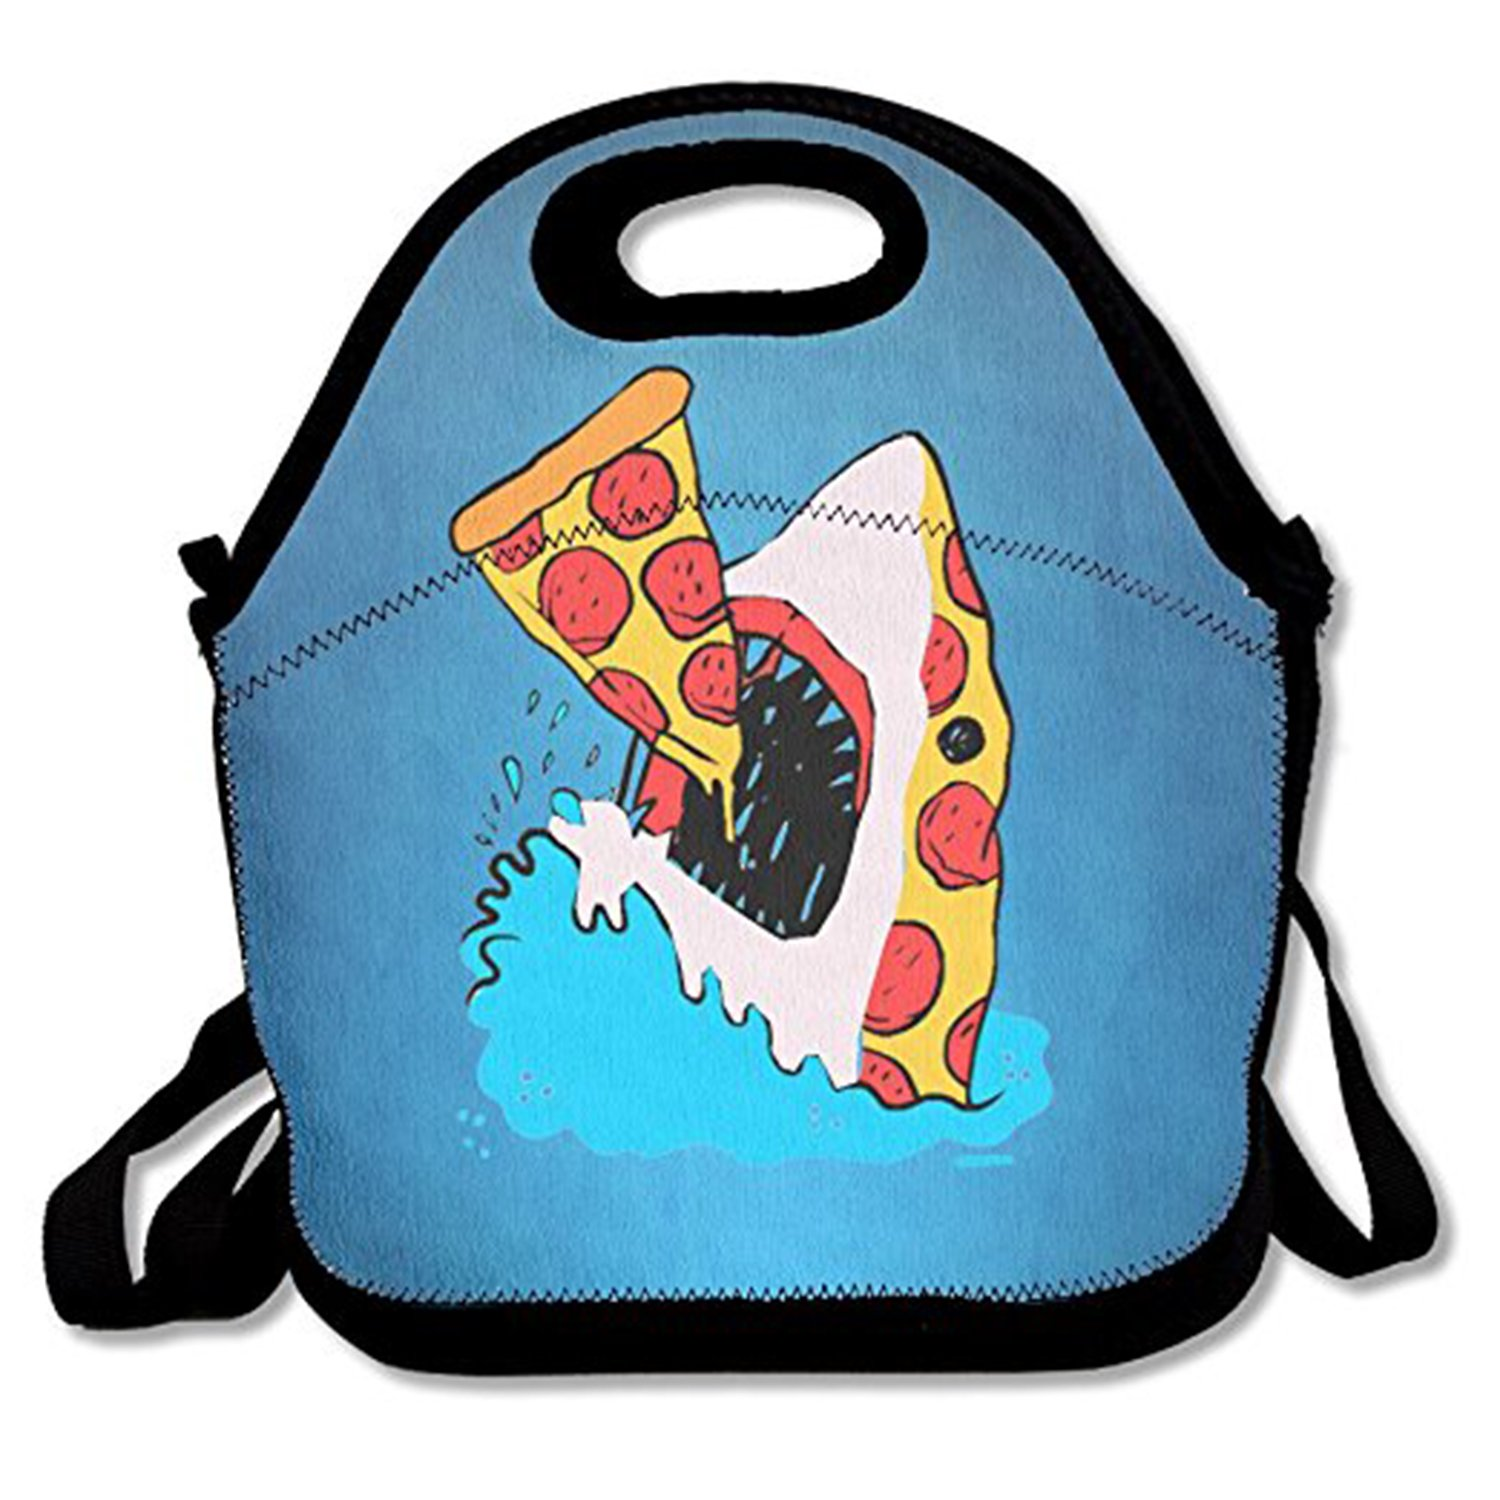 ZMvise Funny Sea Pizza Shark Lunch Tote Insulated Reusable Picnic Lunch Bags Boxes Men Women Kids Toddler Nurses Travel Bag